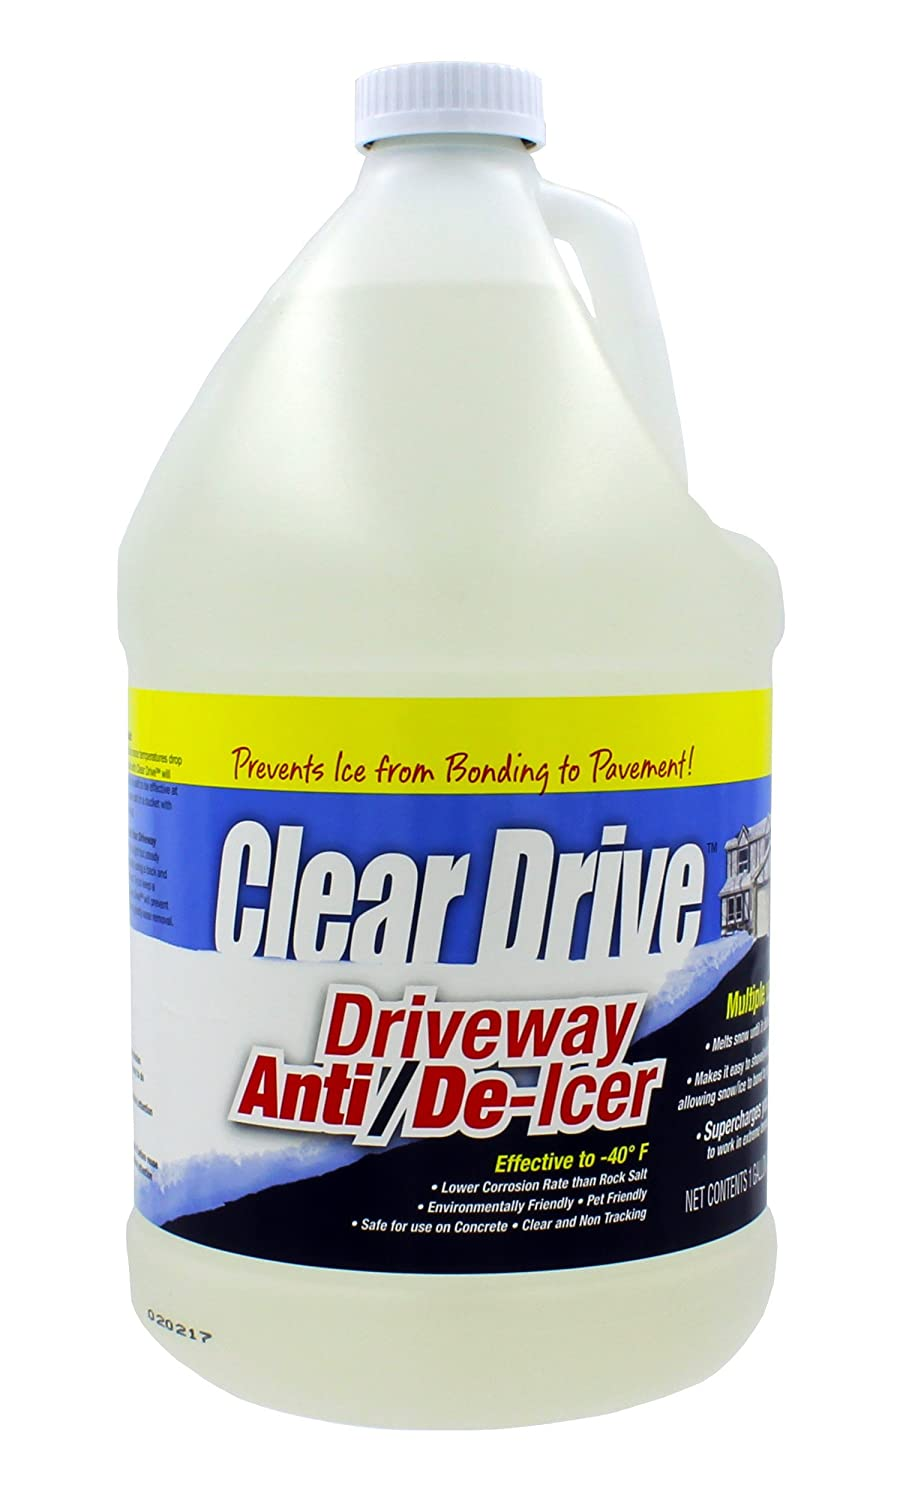 Amazon clear drive liquid calcium chloride professional ice amazon clear drive liquid calcium chloride professional ice melter pet safe non toxic all natural formula for de icing and melting snow and ice solutioingenieria Gallery